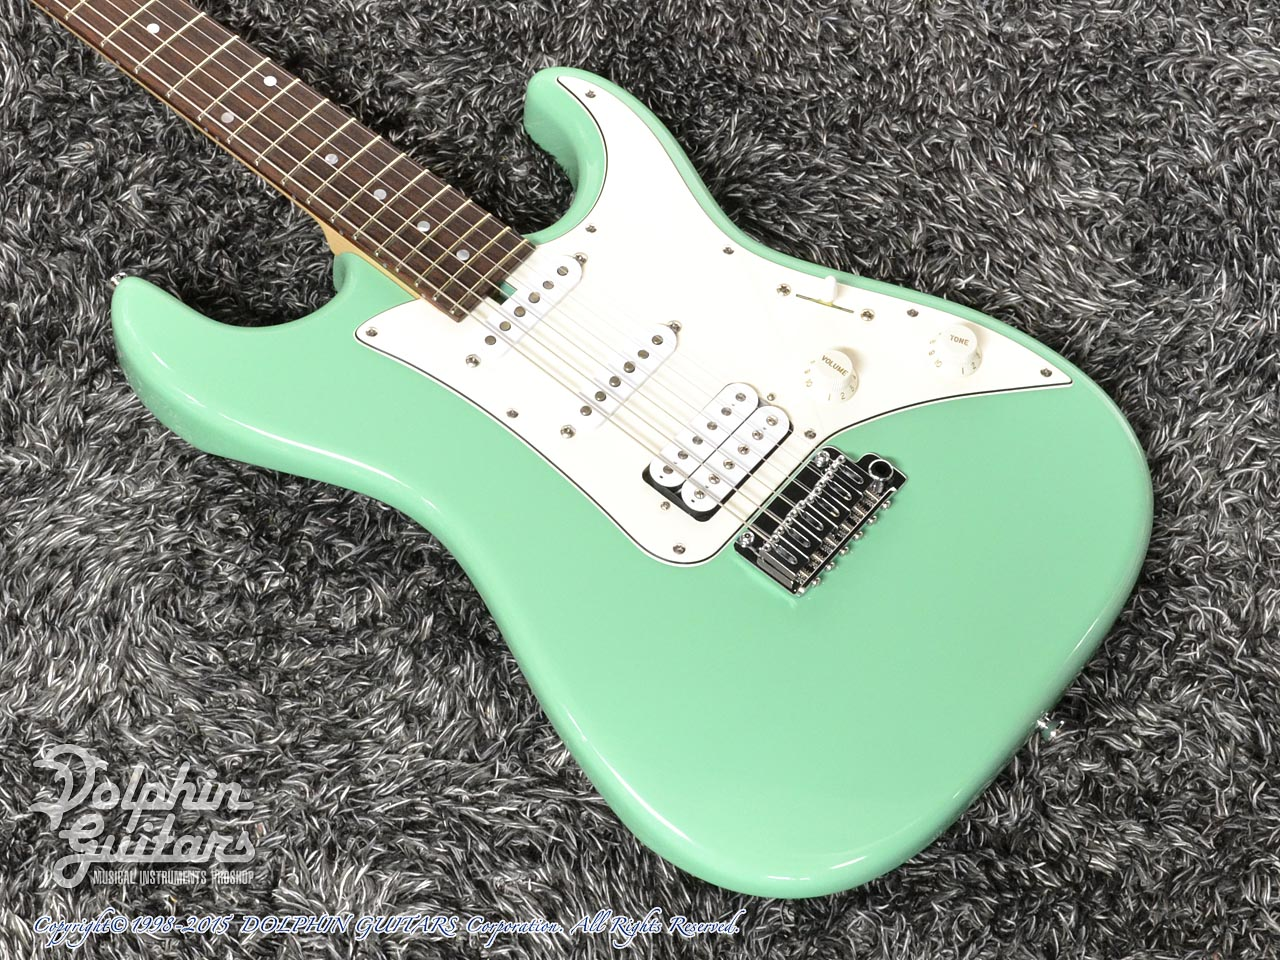 TOPROCK GUITARS: ST-G6 Classic (Sea Form Green) (1)